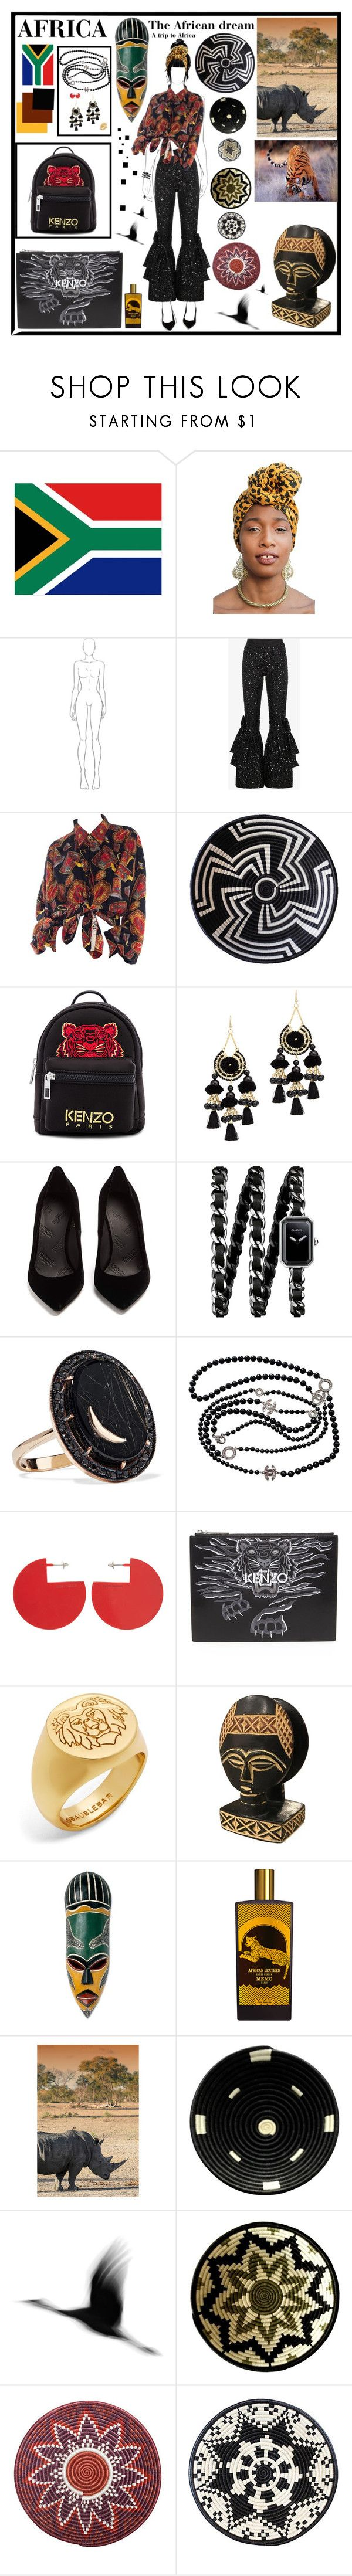 """""""Africa trip"""" by meganlawrence23 ❤ liked on Polyvore featuring Ashish, Indego Africa, Kenzo, Area Stars, Maison Margiela, Chanel, Andrea Fohrman, Isabel Marant, Memo Paris and All Across Africa"""